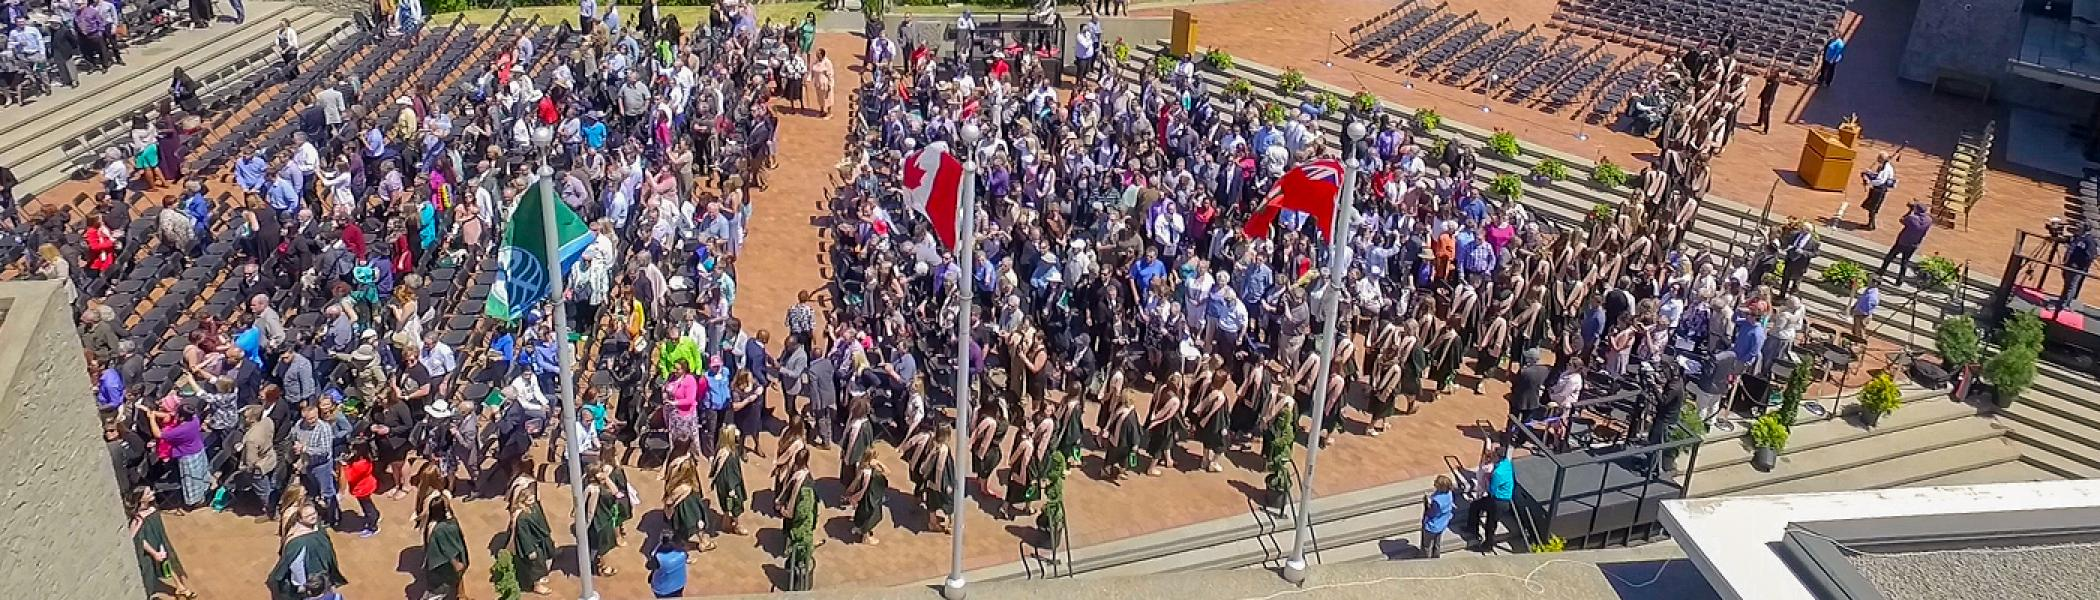 Aerial view of a convocation ceremeony outside on the Bata podium in the summer sun